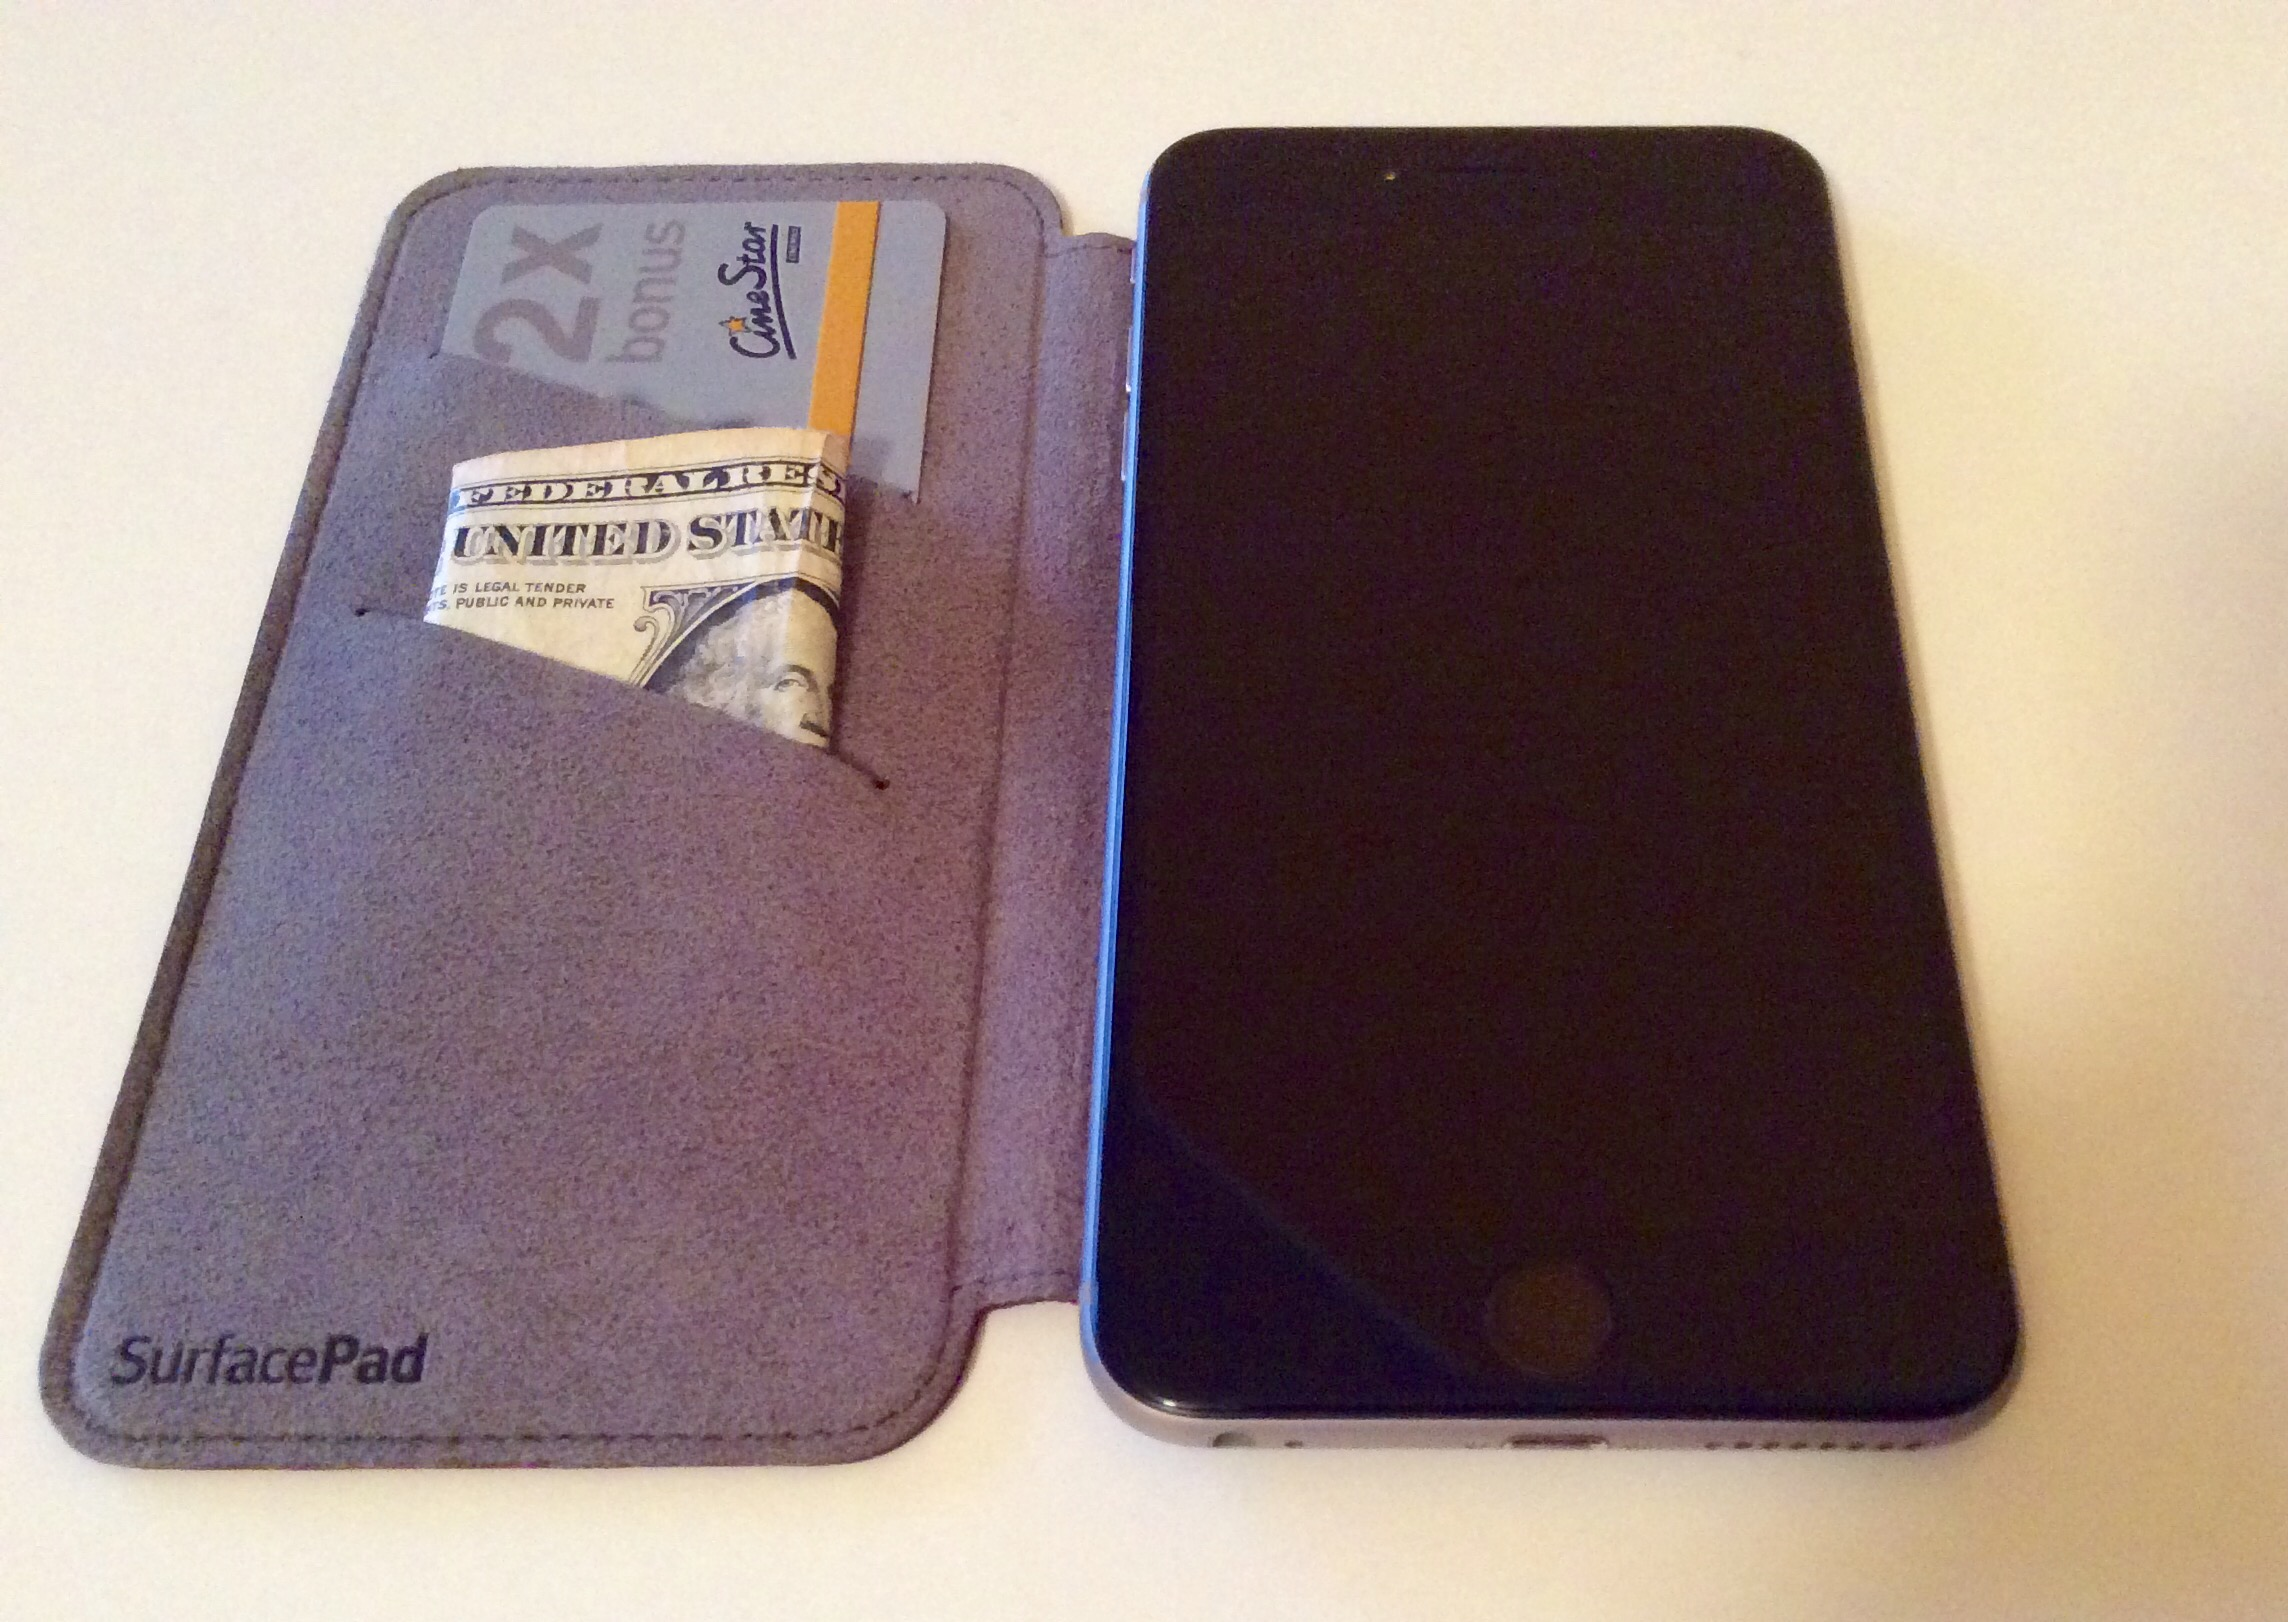 Twelve South SurfacePad for iPhone 6 Plus image 00016